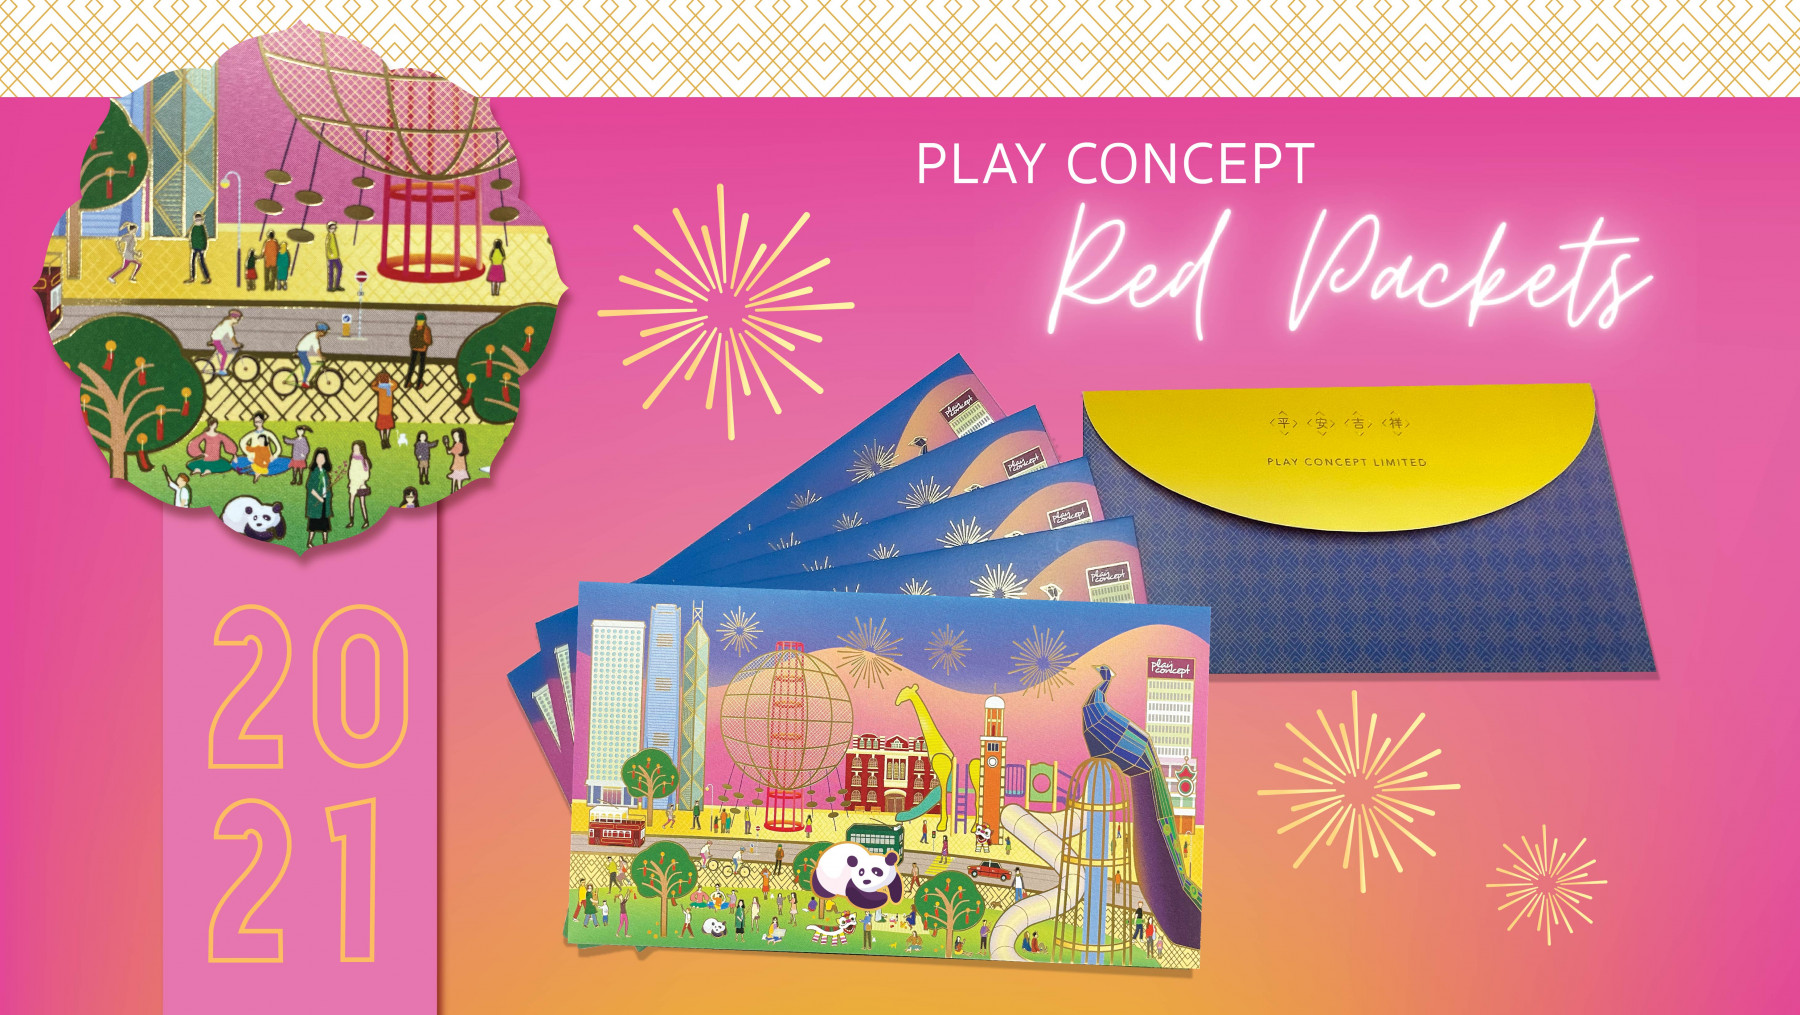 Play Concept - Celebrate Lunar New Year with Play Concept Red Packets - 1